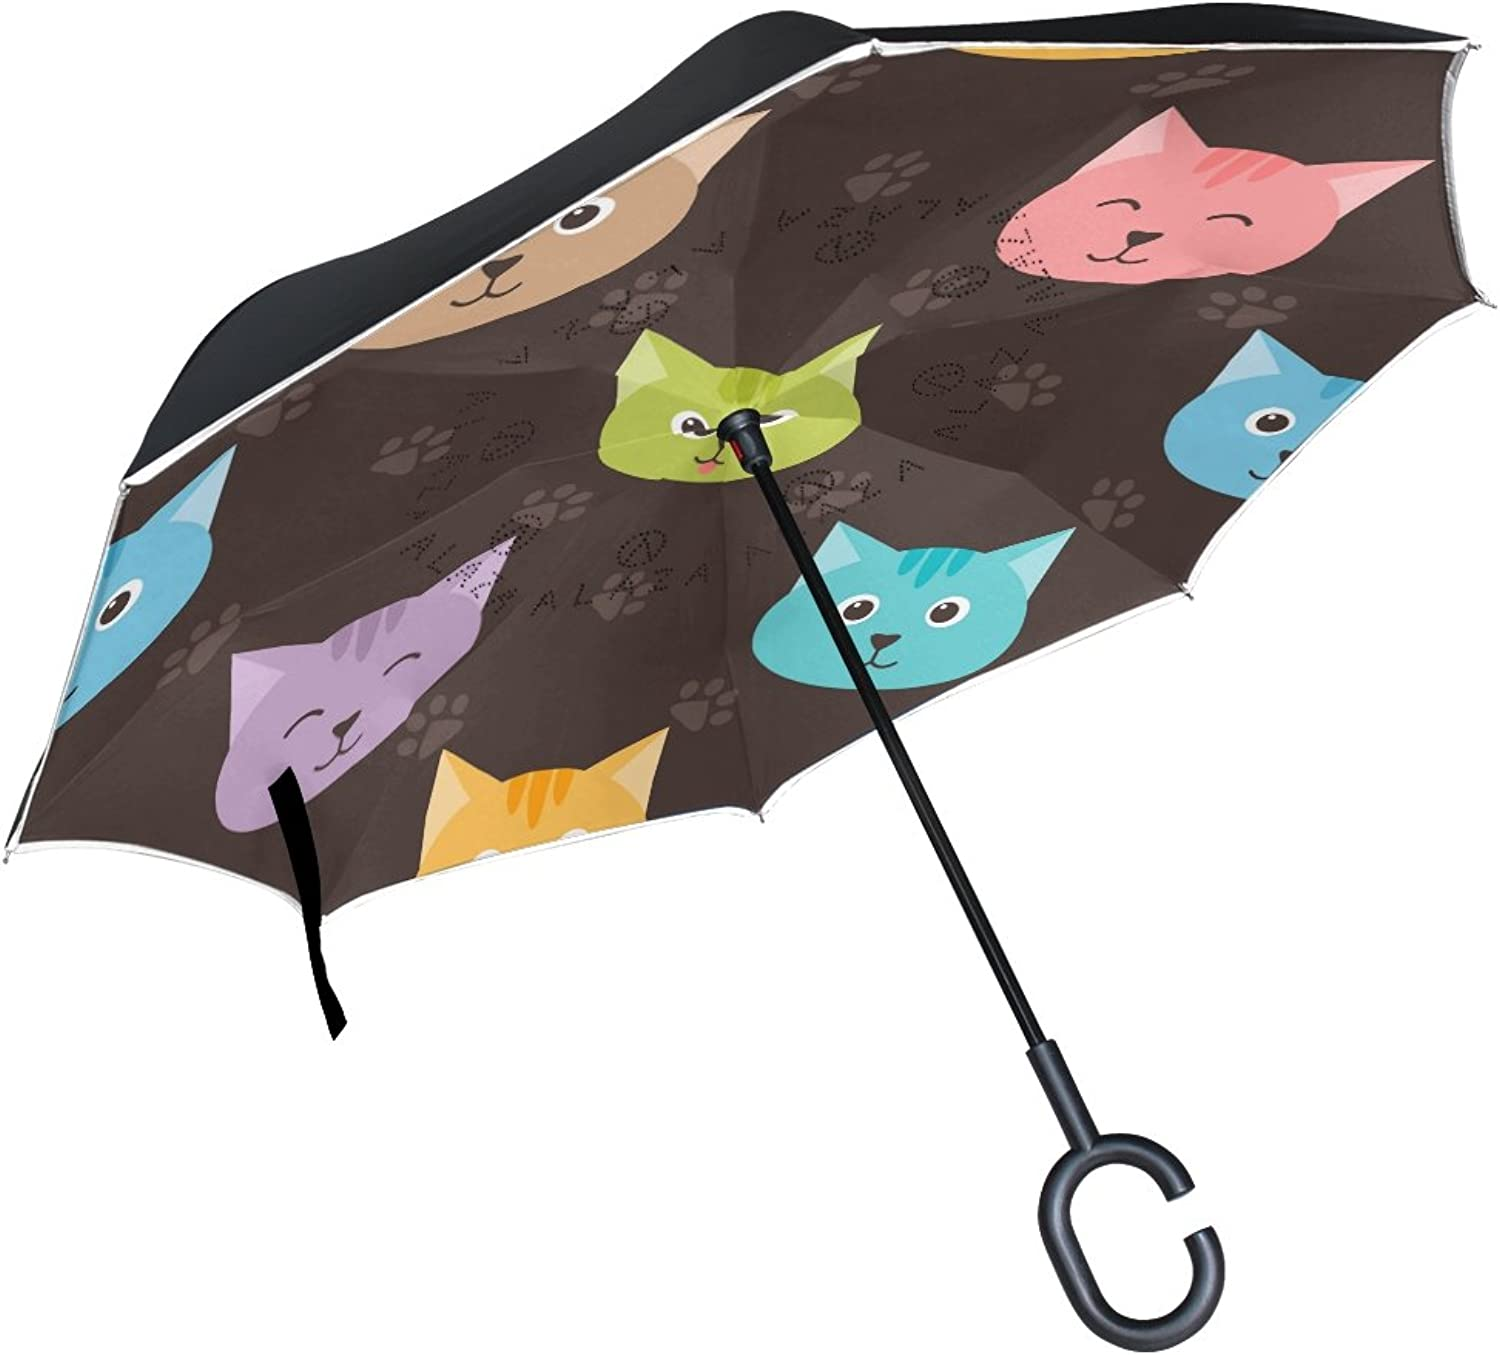 MASSIKOA Cartoon Cats And Footprints Ingreened Double Layer Straight Umbrellas Inside-Out Reversible Umbrella with C-Shaped Handle for Rain Sun Car Use